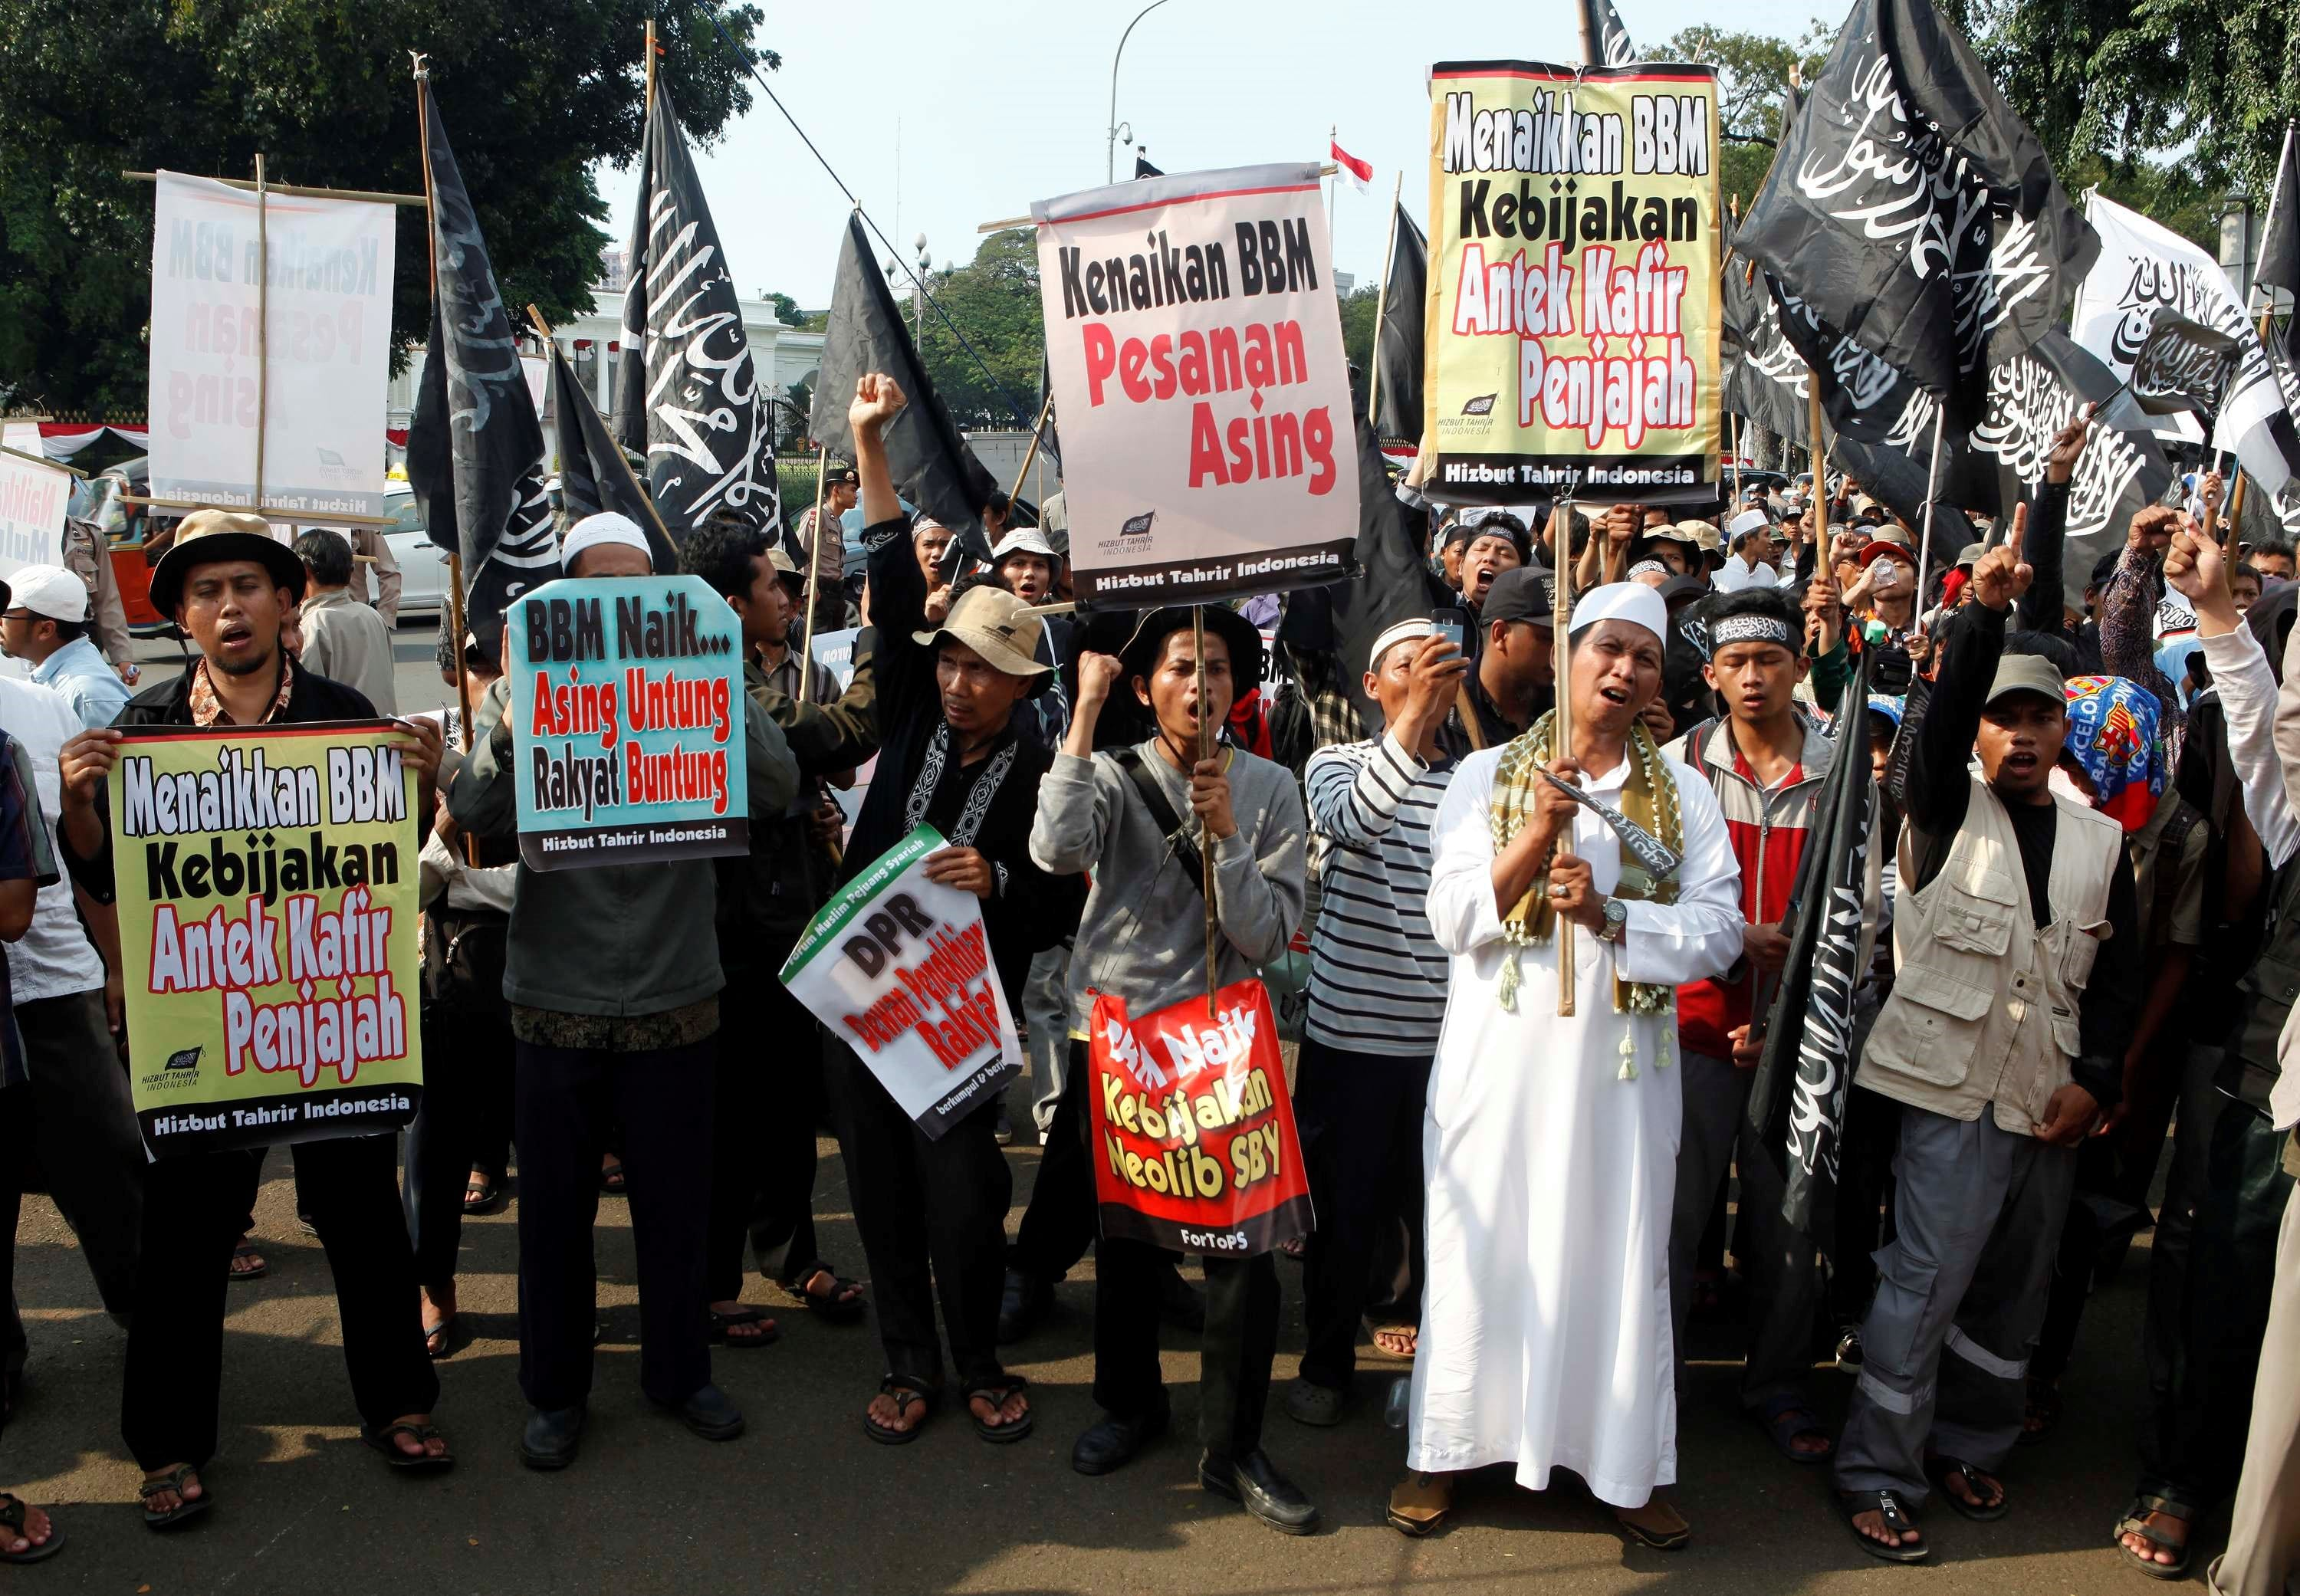 Hizbut Tahrir in Indonesia: Riding the Wave of the Islamization Agenda